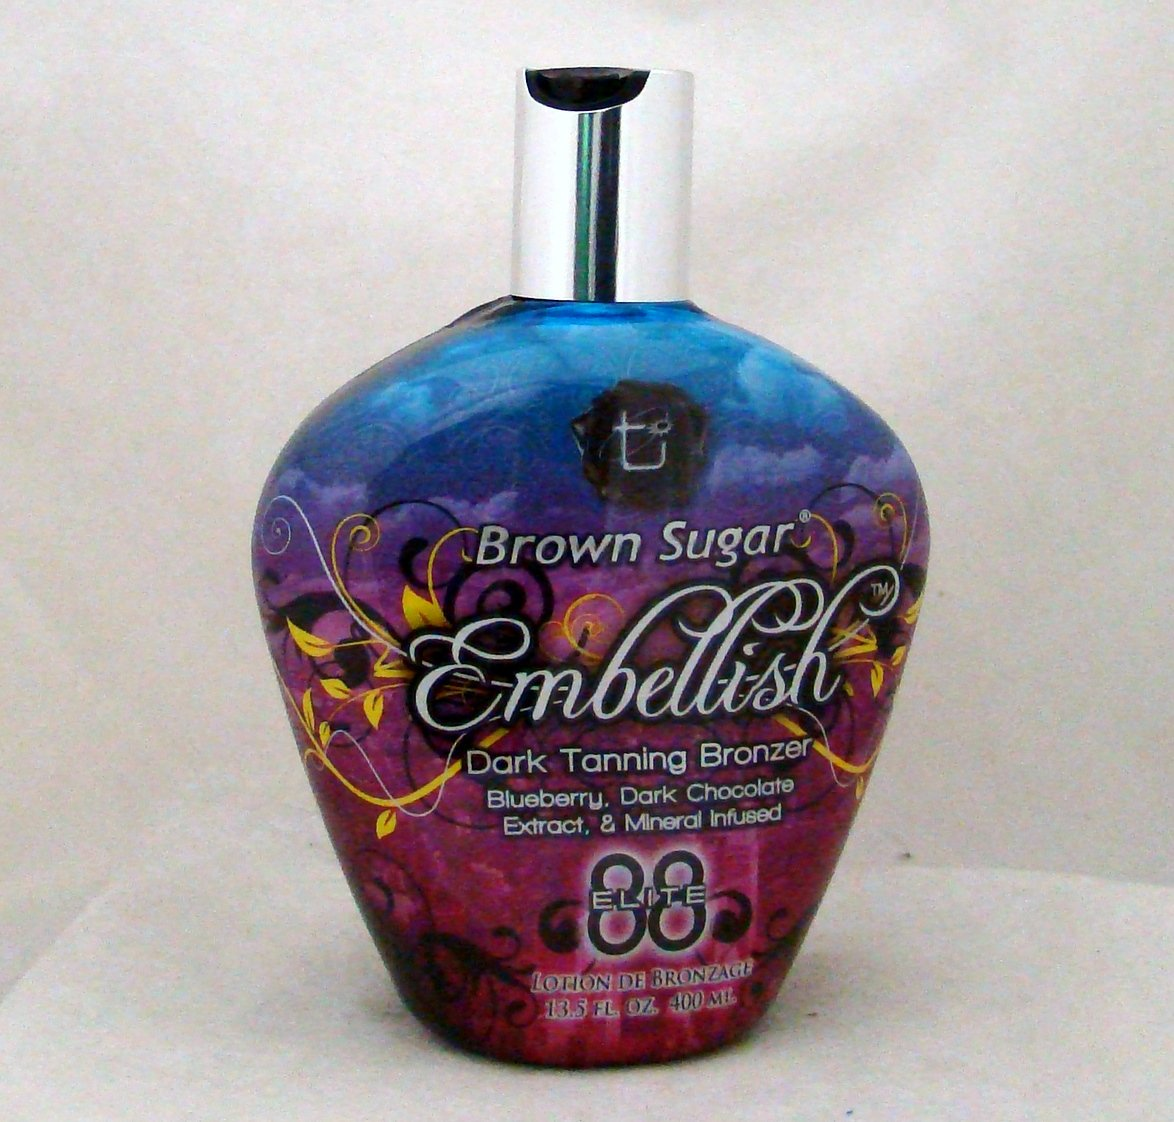 Tan Incorporated Brown Sugar EMBELLISH Bronzer Tanning Lotion 13.5 oz by TAN